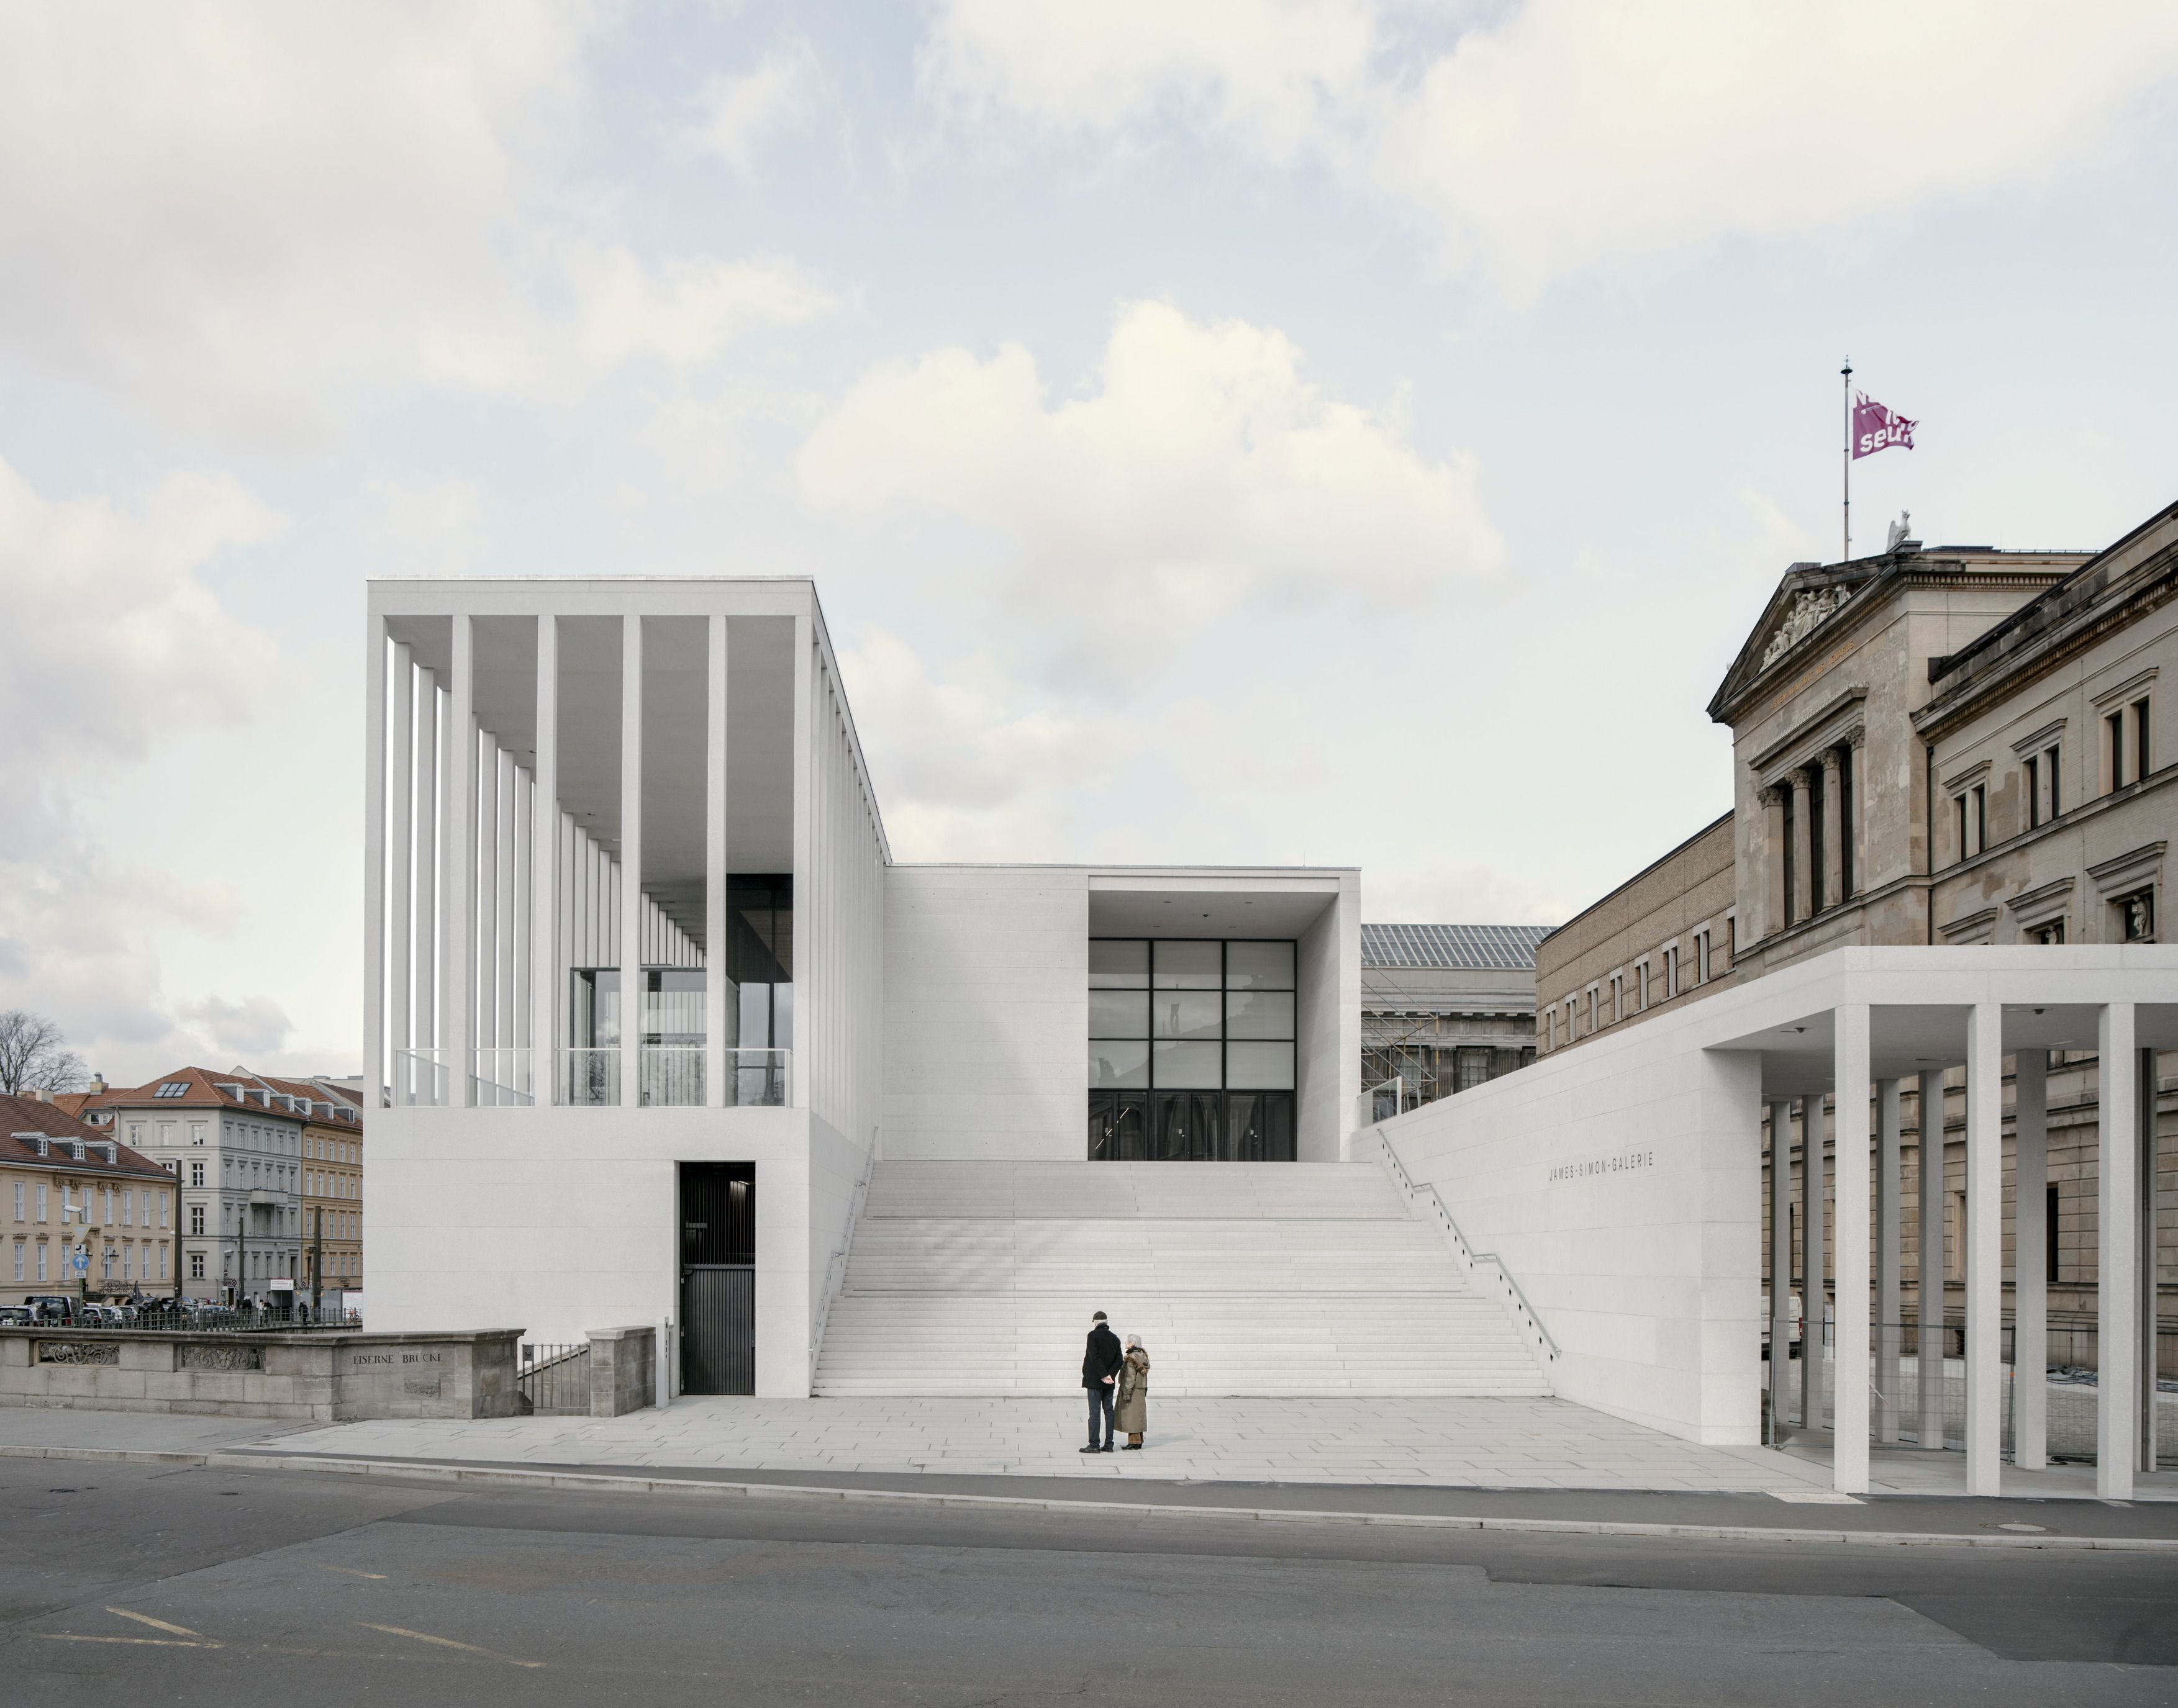 James Simon Galerie Picture Gallery David Chipperfield Architects Museum Architecture Architecture